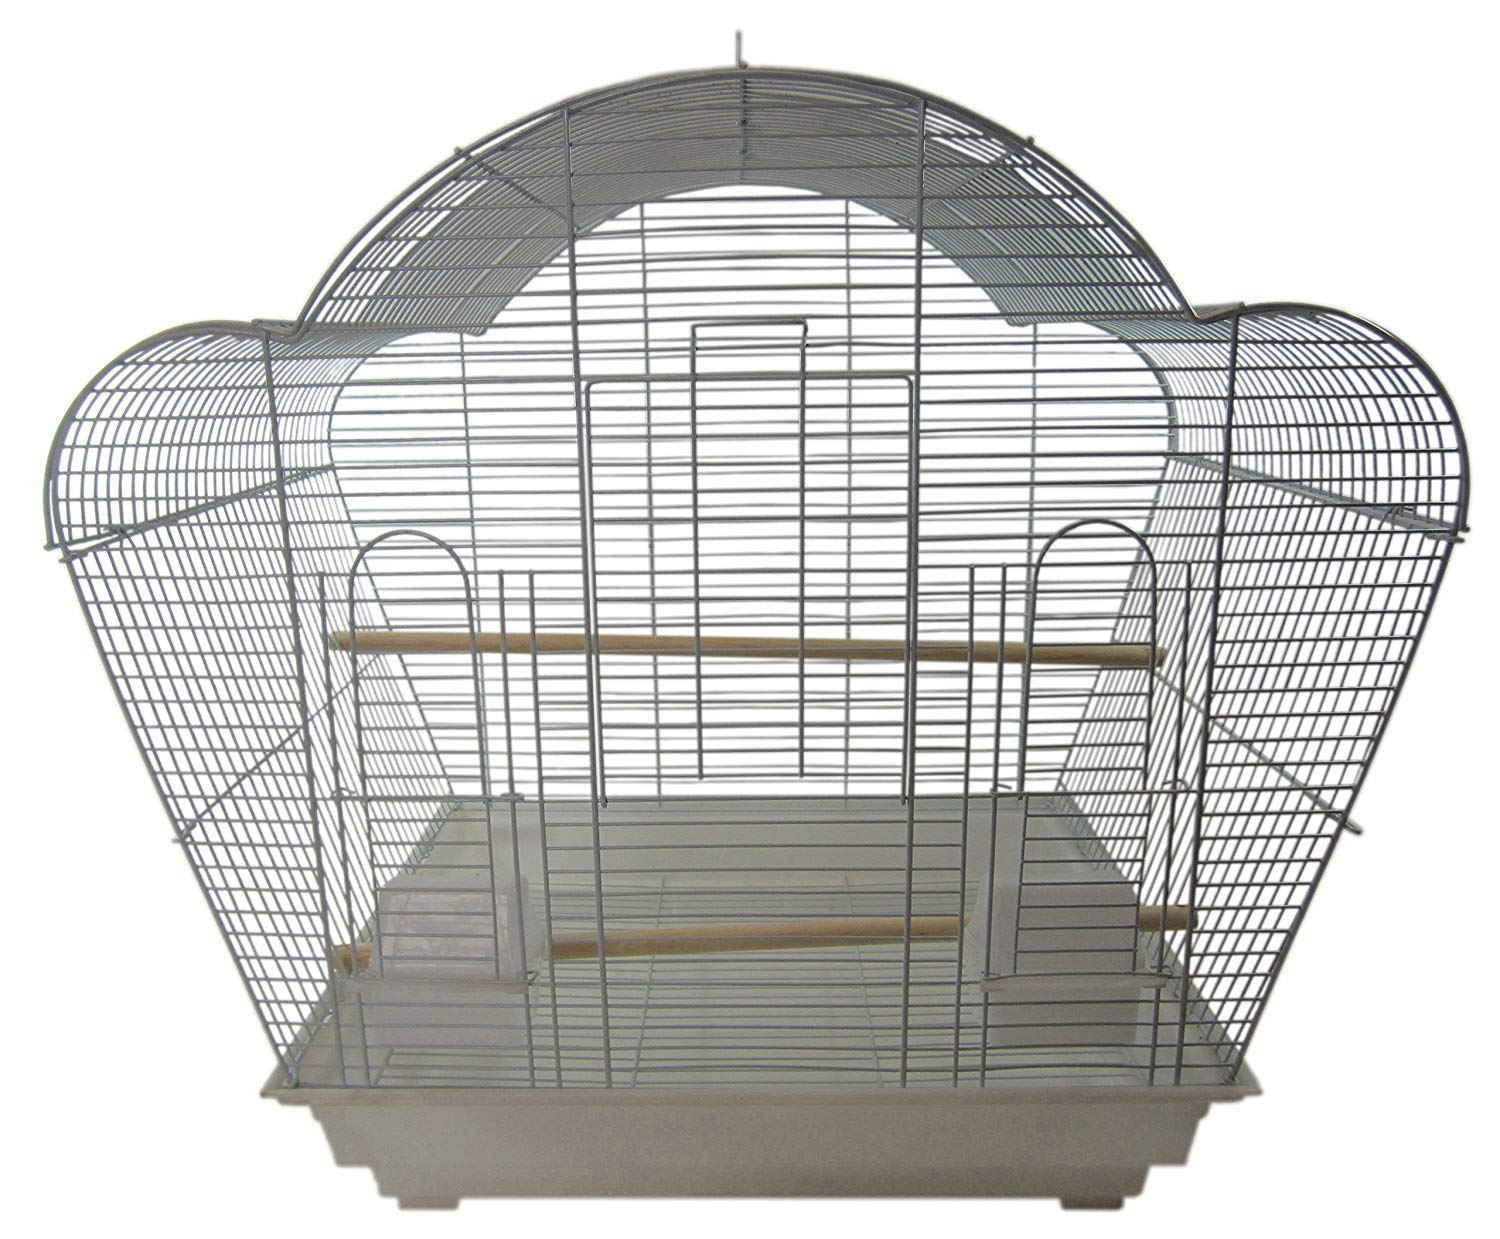 YML Scallop-Top Bird Cage with Optional Stand from YML Group